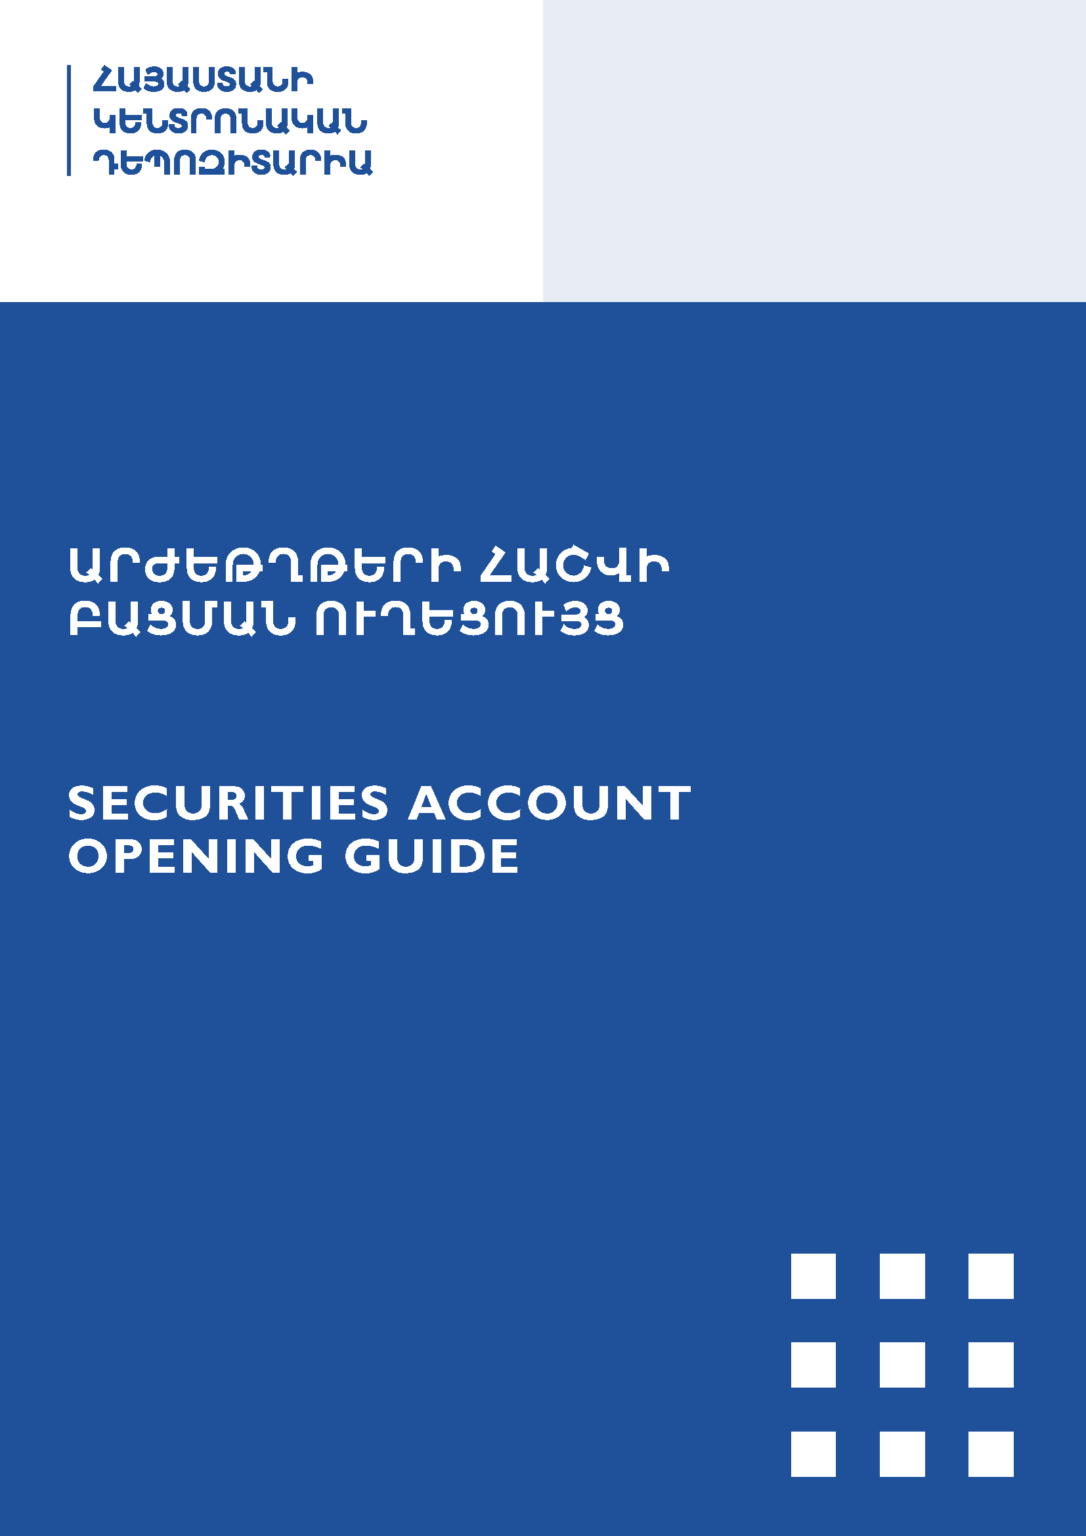 CDA securities account opening guide cover